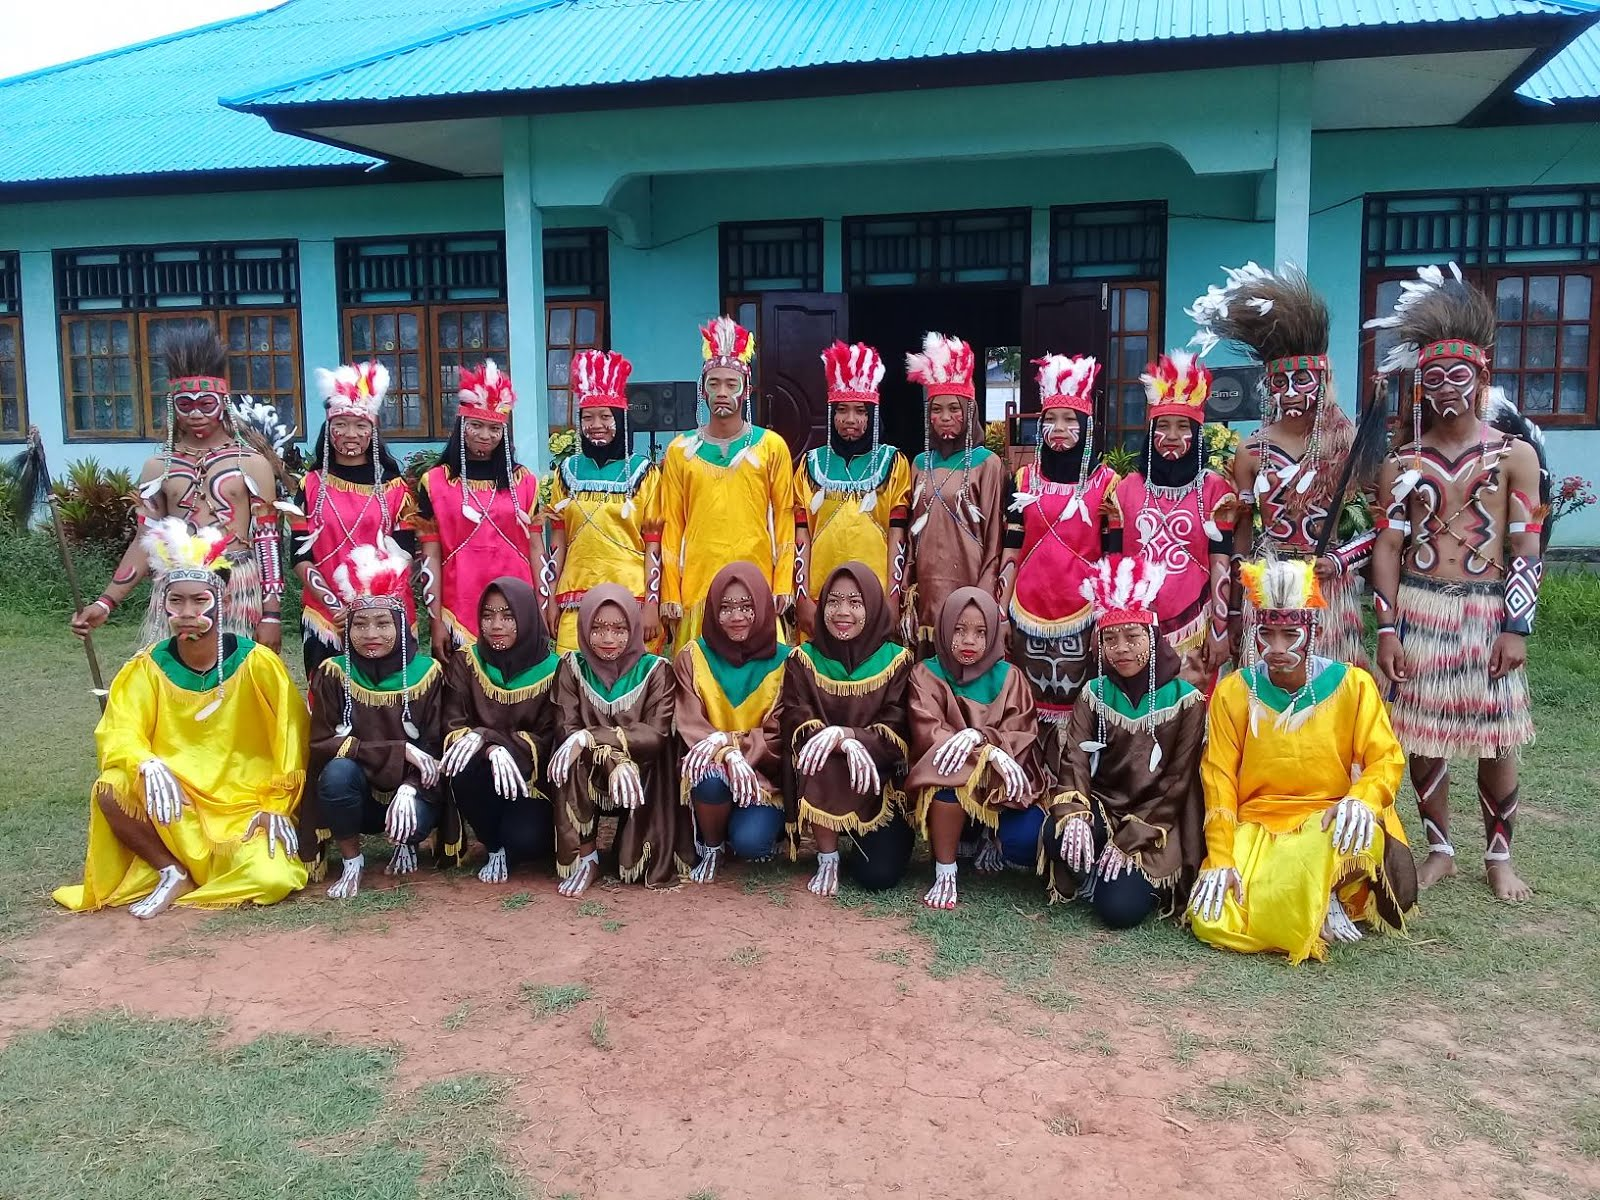 GROUP TARIAN ADAT PAPUA